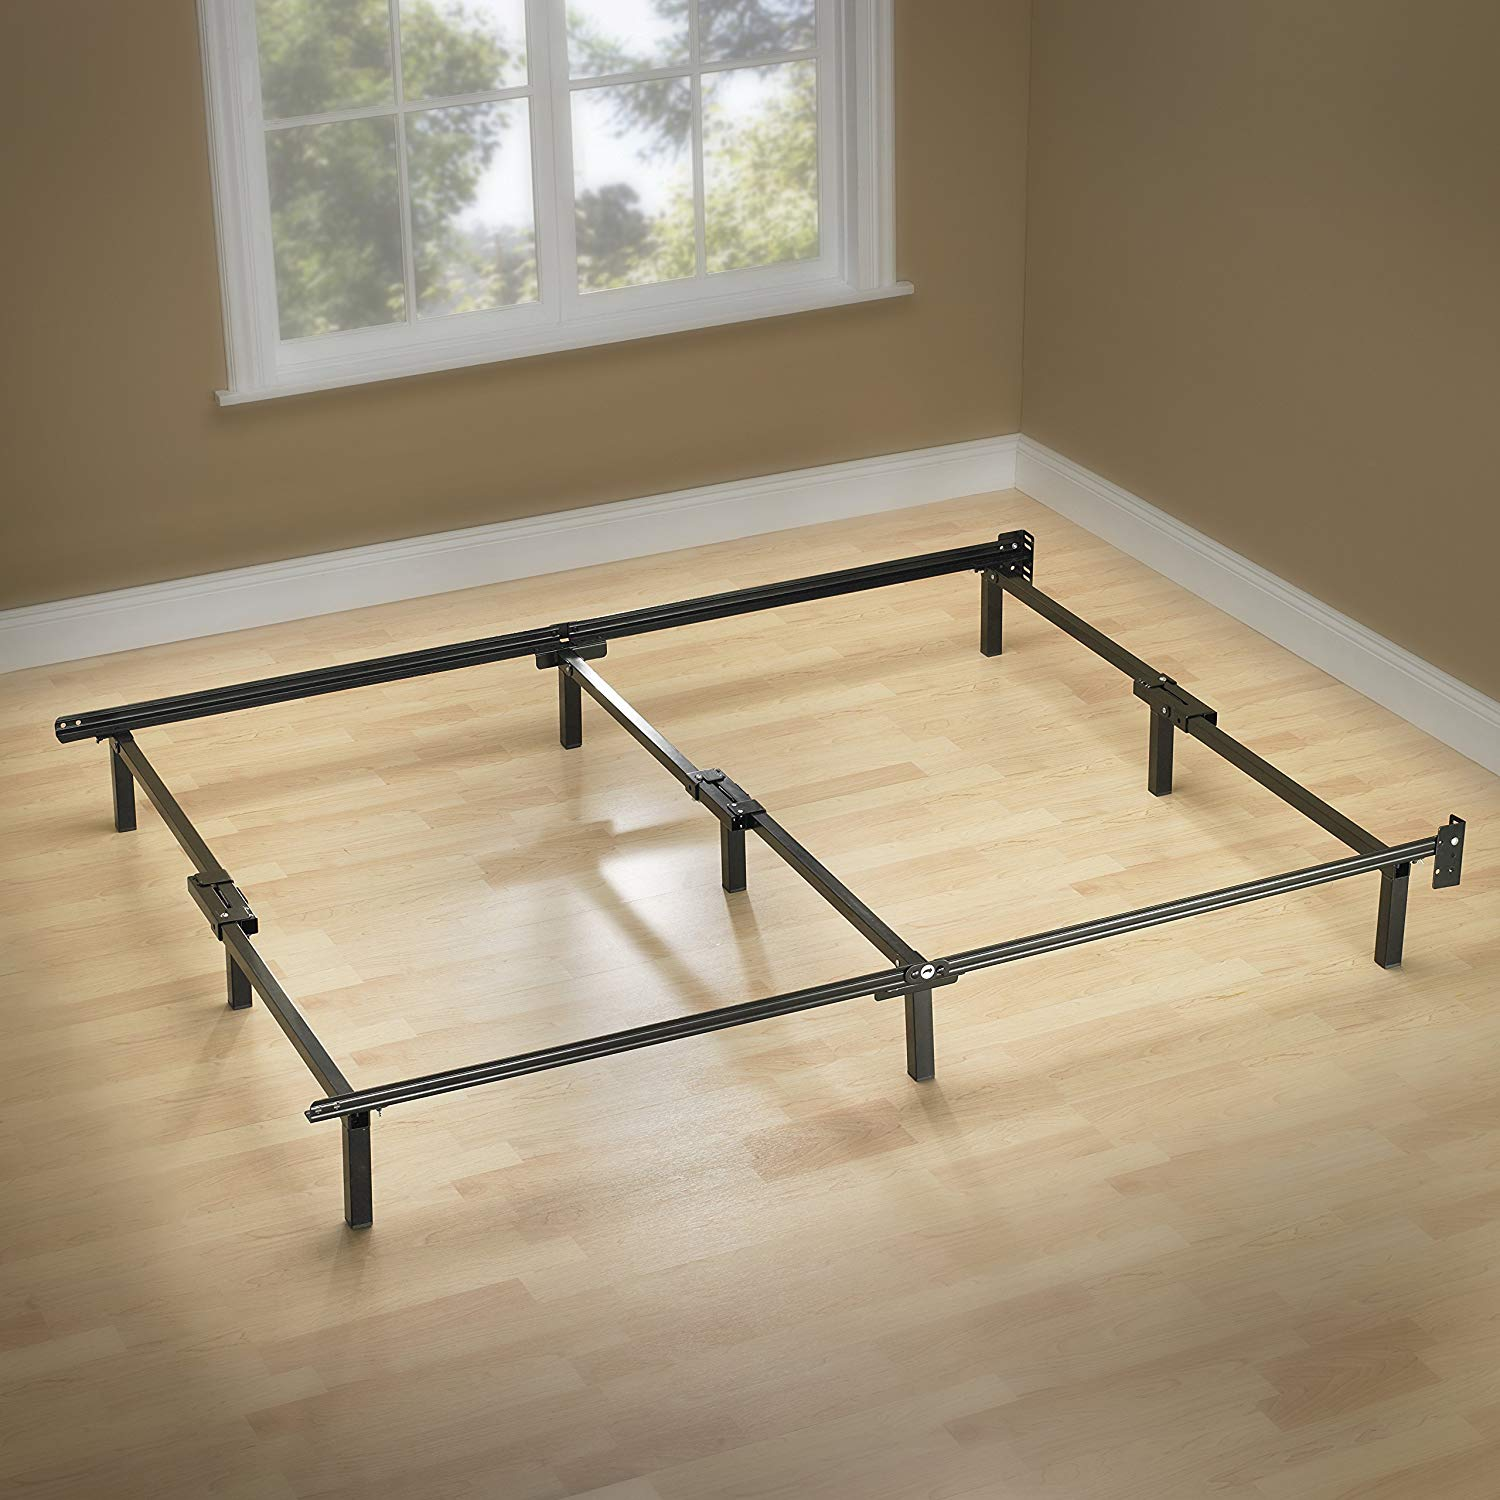 queen bed frame amazon.com: zinus compack 9-leg support bed frame, for box spring u0026 IVBANGK